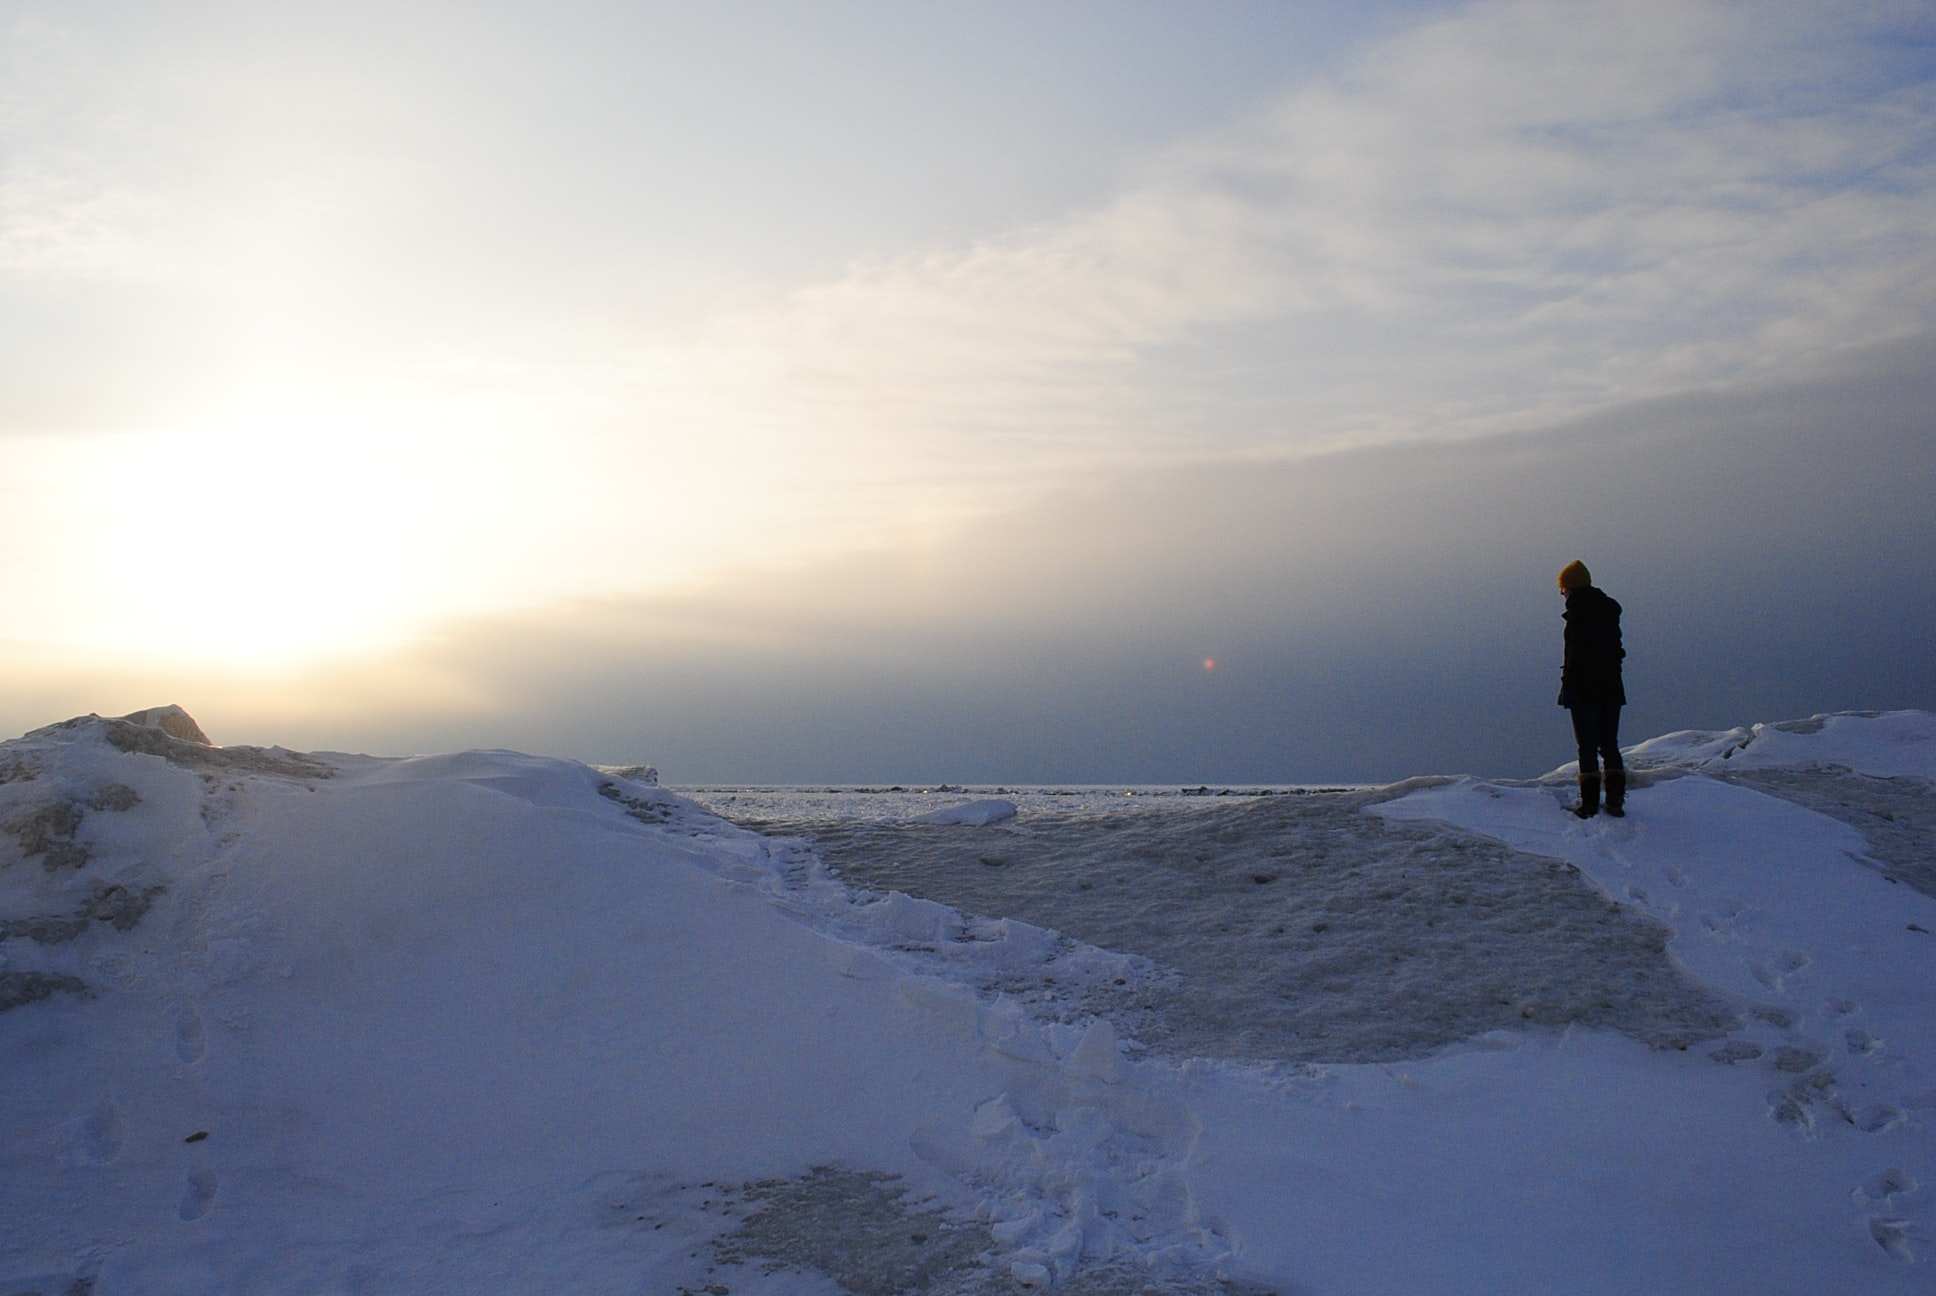 person standing on snow mountain under sunset